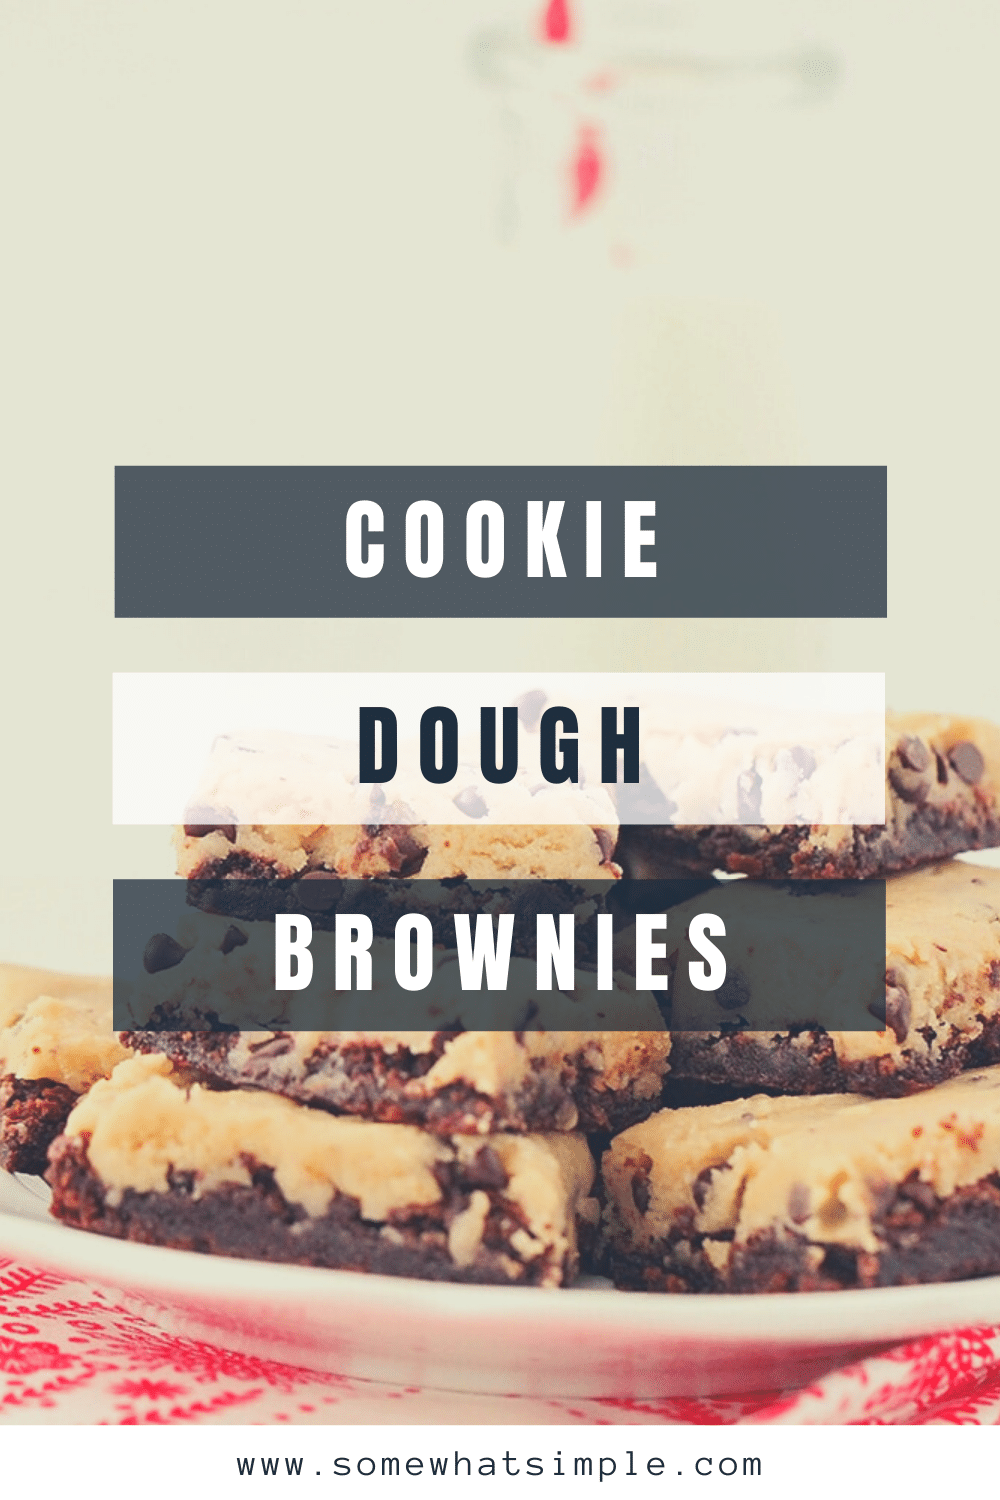 These cookie dough brownies are so rich and decadent! A fudgy chocolate brownie layer topped with eggless cookie dough, for an unforgettable dessert! They are the perfect combination of my two favorite treats; brownies and chocolate chip cookies. via @somewhatsimple